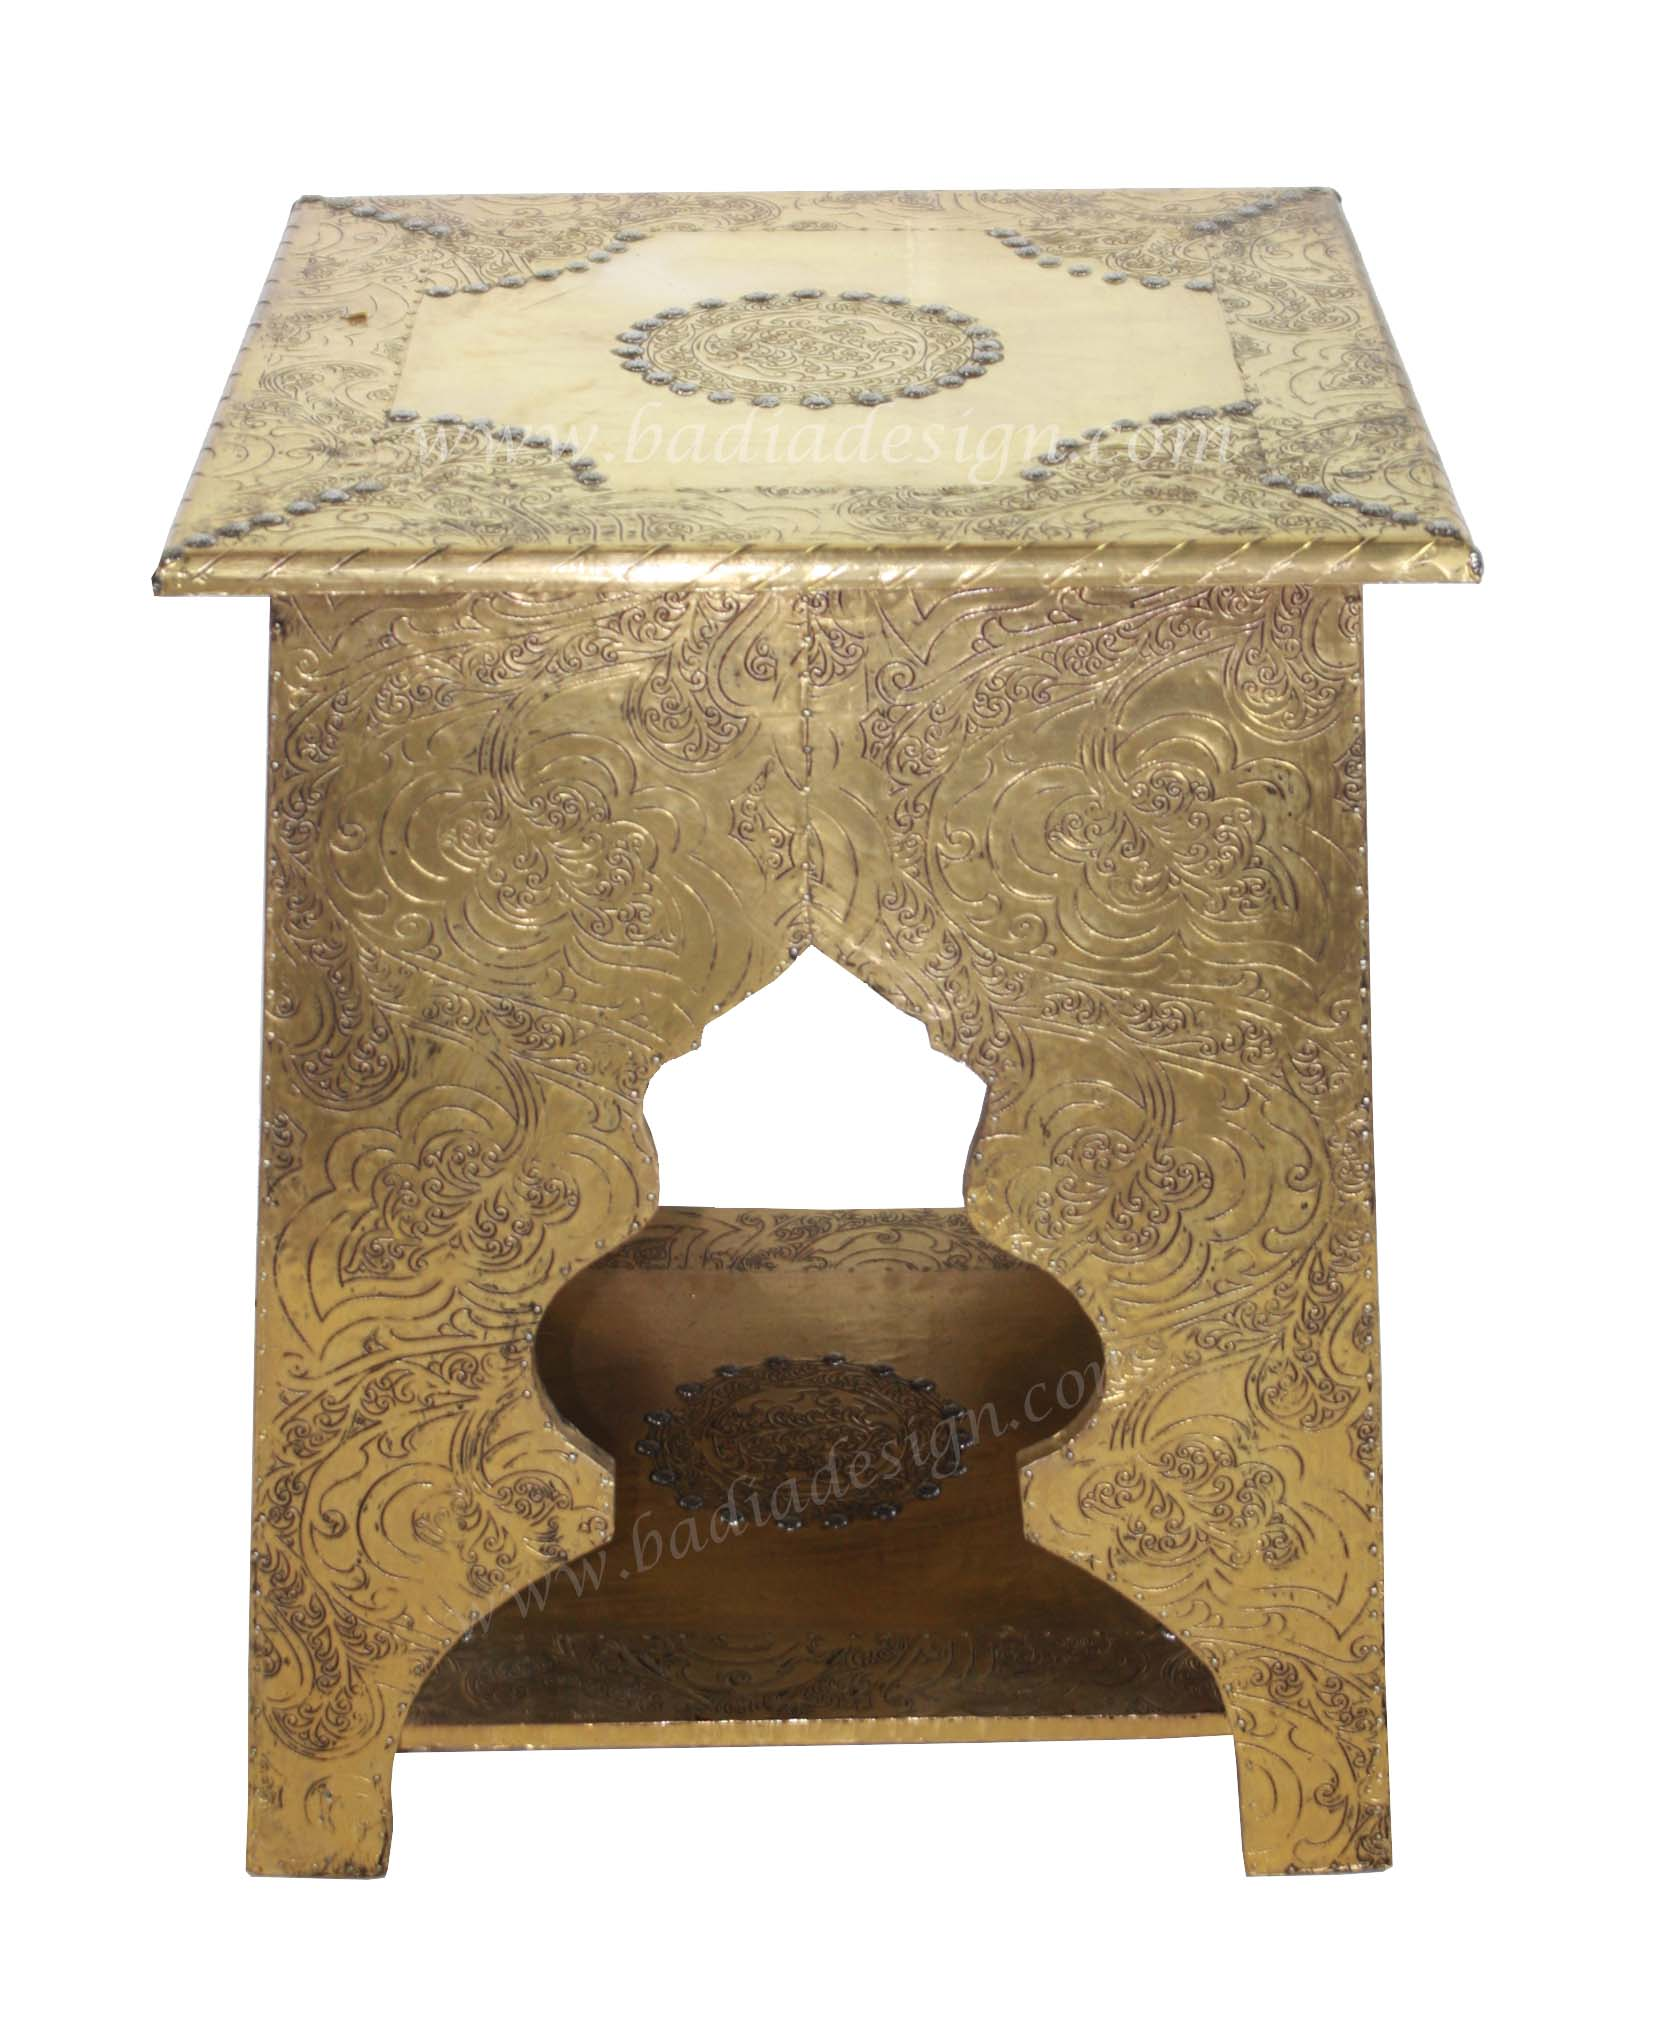 moroccan-brass-covered-side-table-br-st012-1.jpg